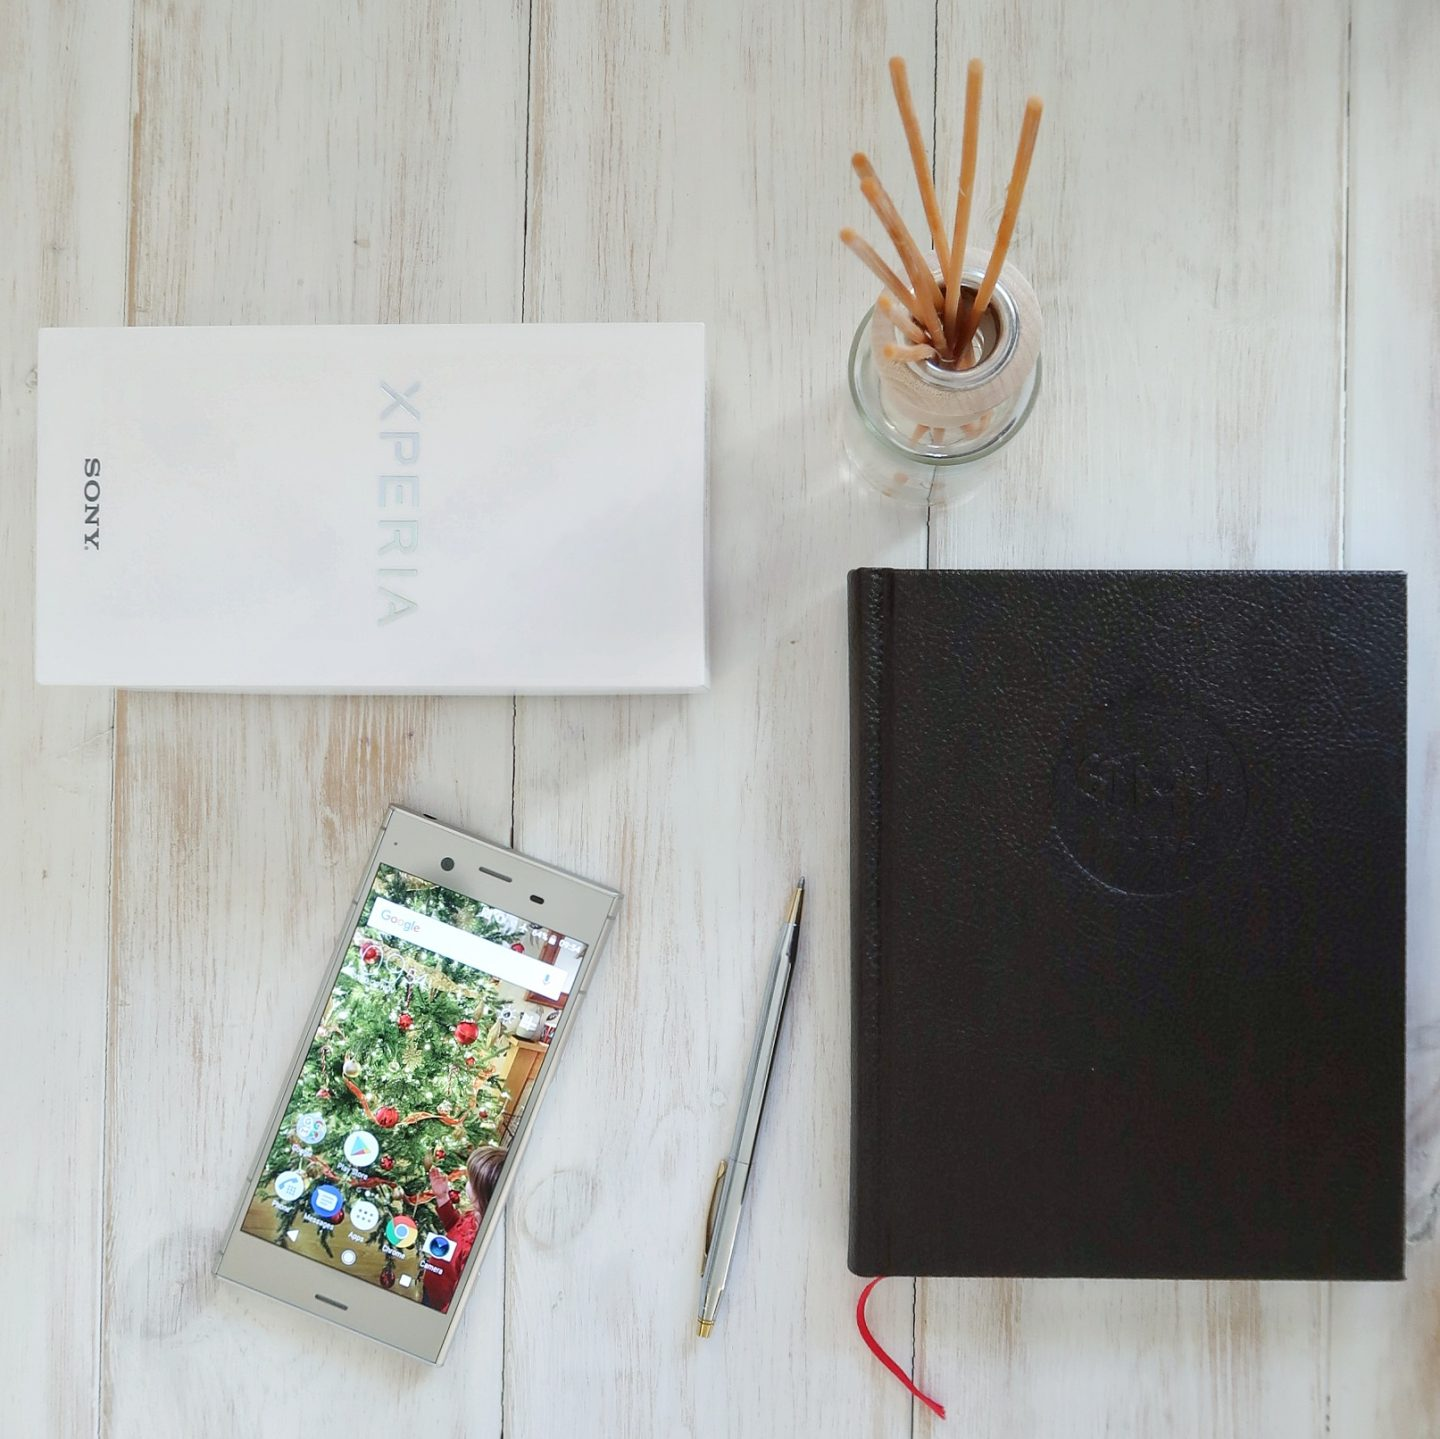 A flat lay image of the Sony Xperia ZX1, a diary, pen, and box.